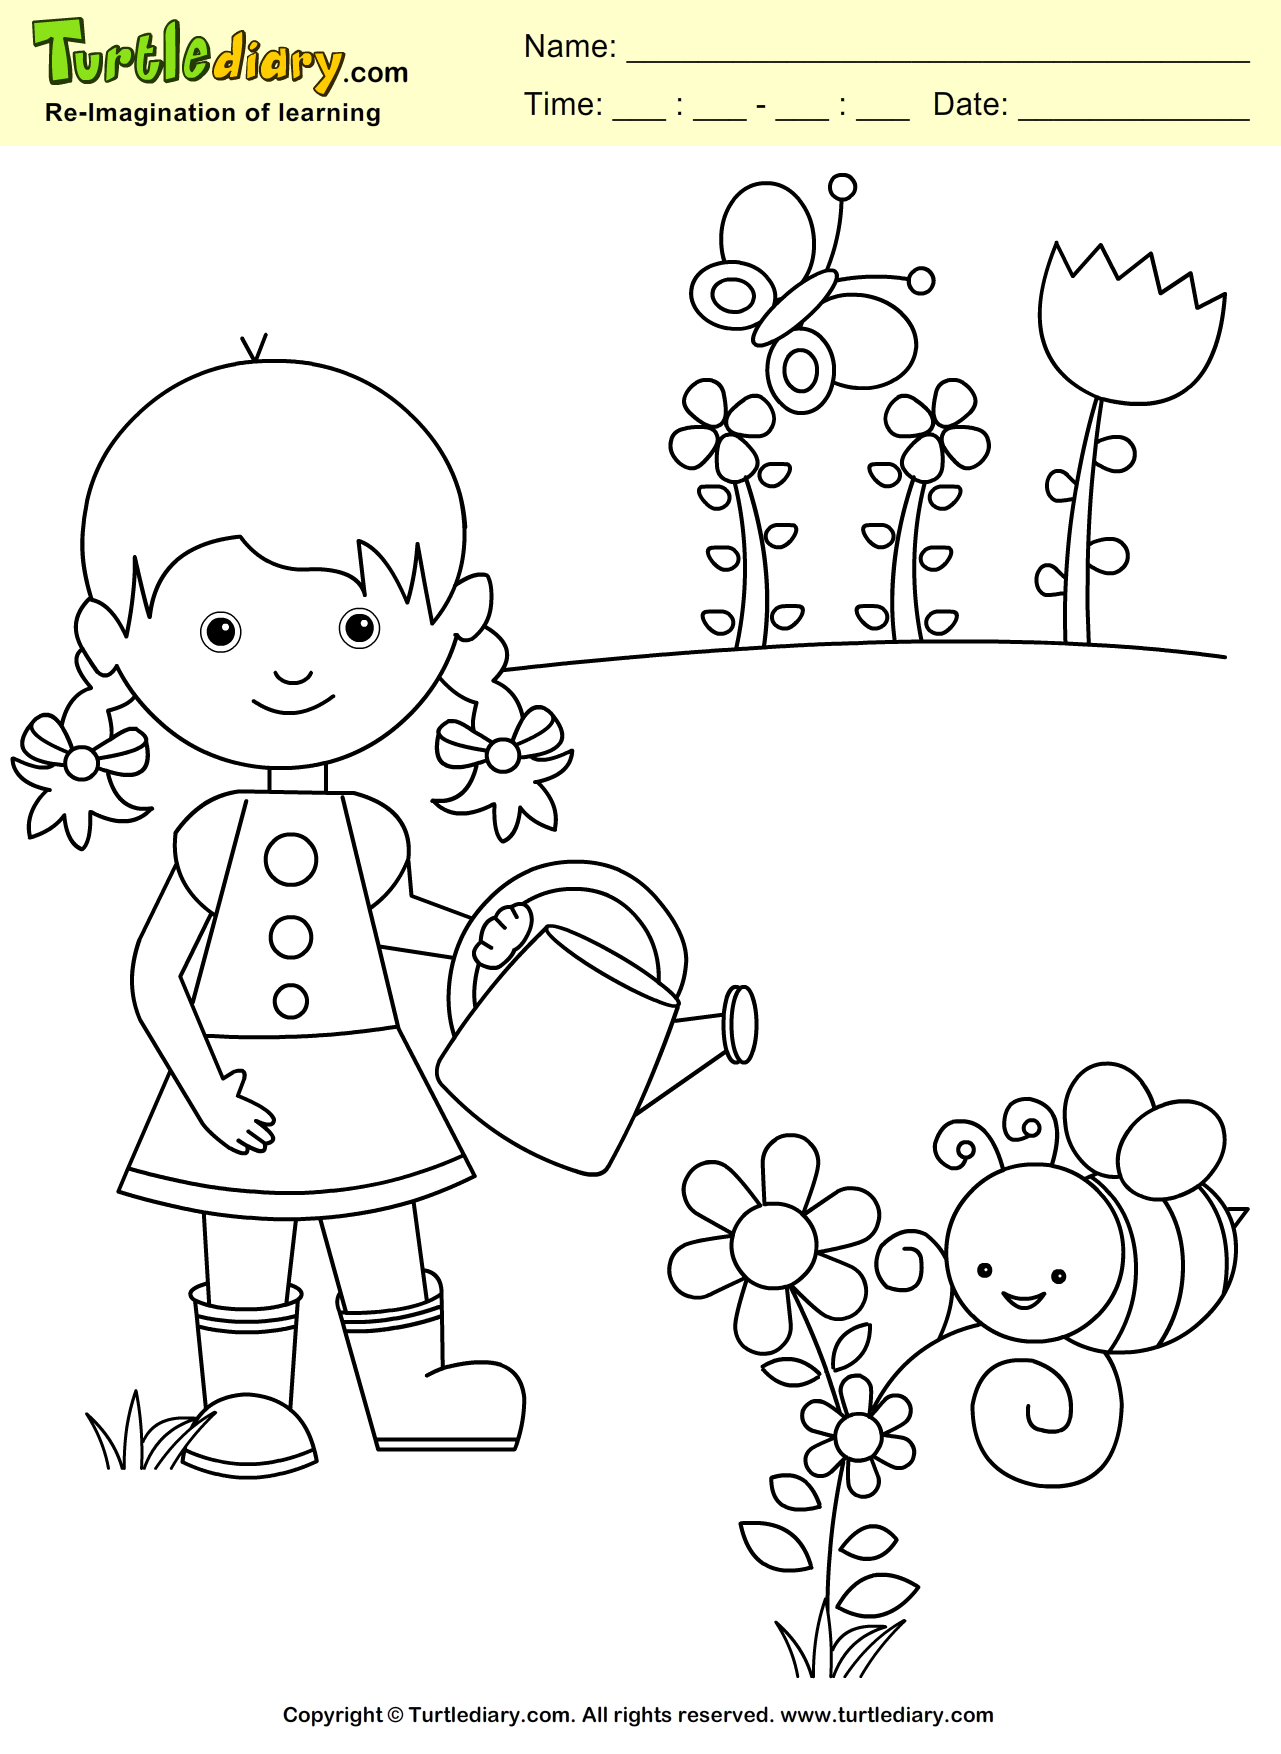 Spring coloring pages and crafts - Spring Garden Coloring Page Kids Crafts Coloring Turtlediary Childeducation